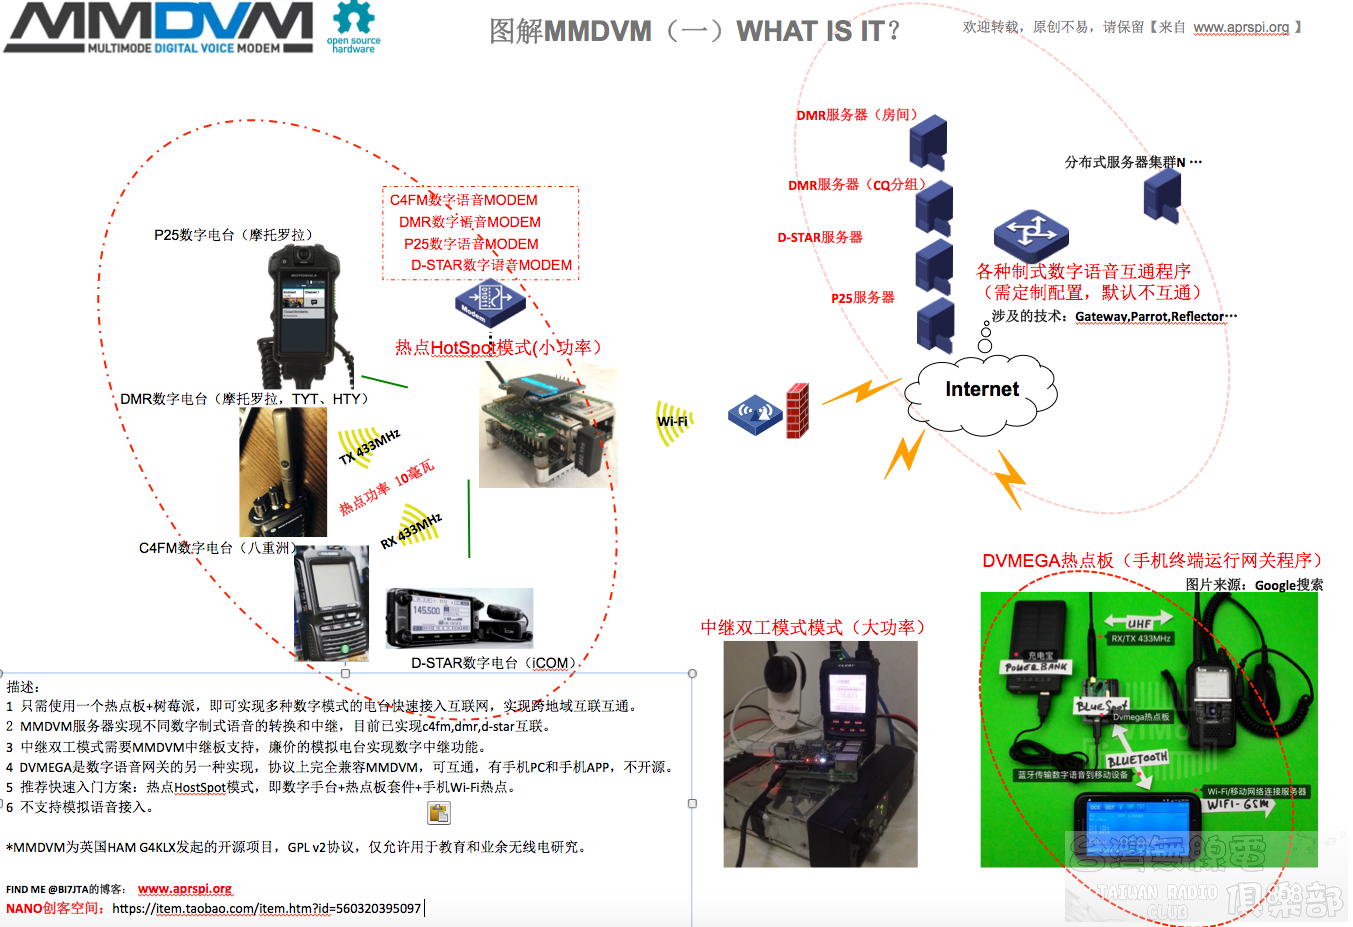 What-is-mmdvm_From www.aprspi.org.png